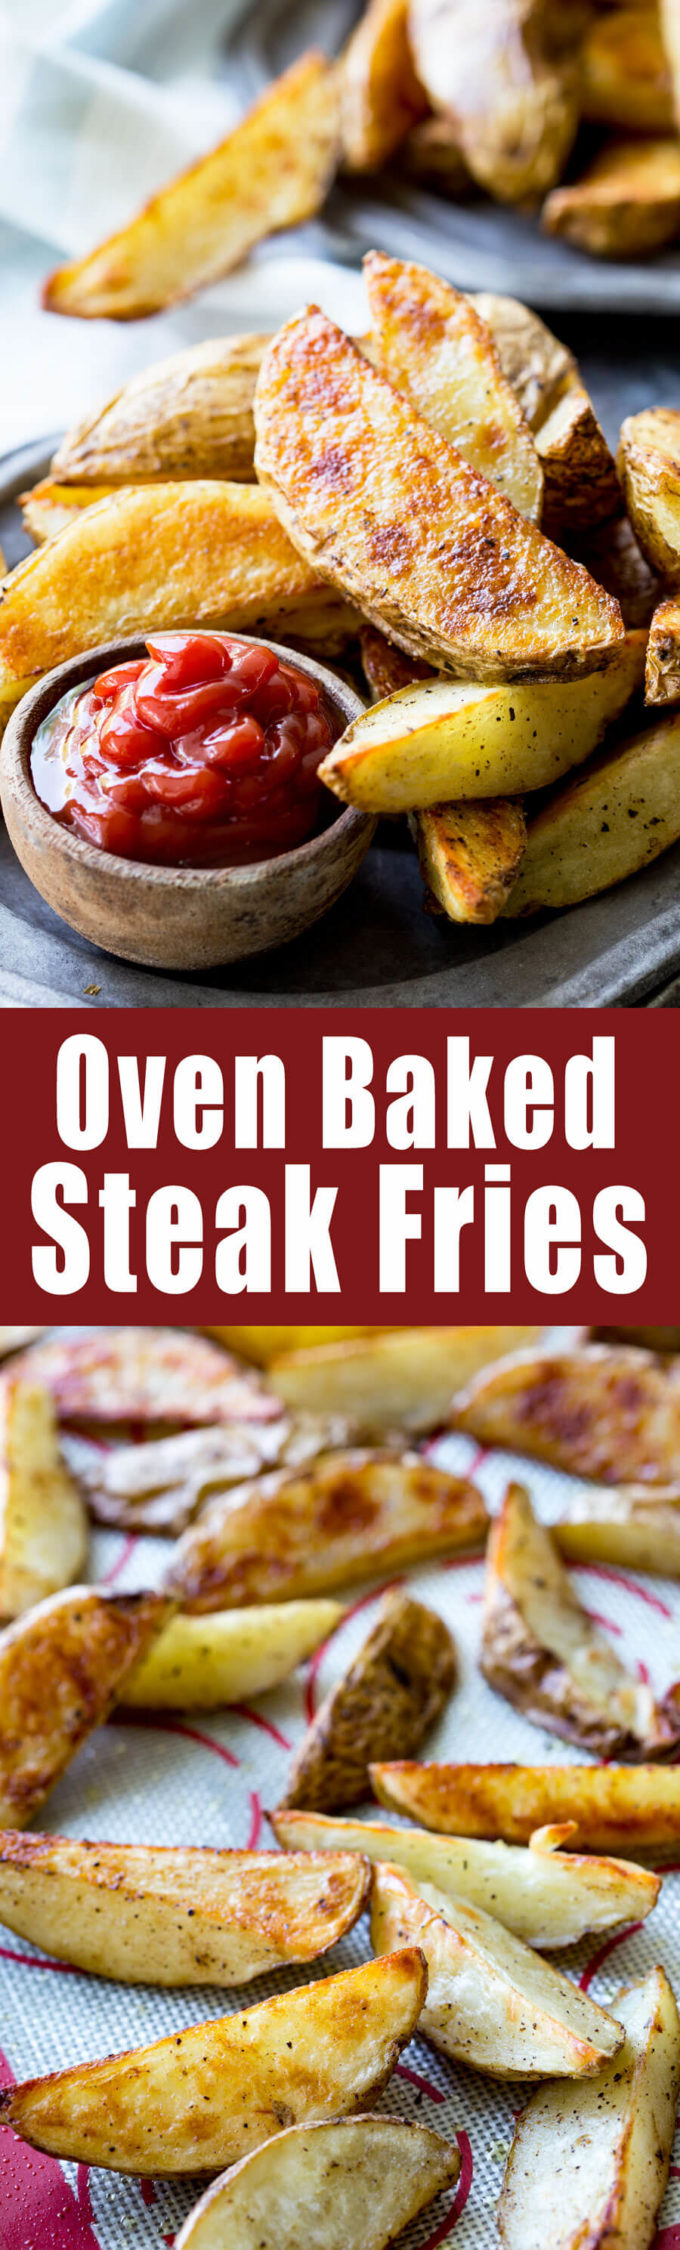 how to cut steak fries baked